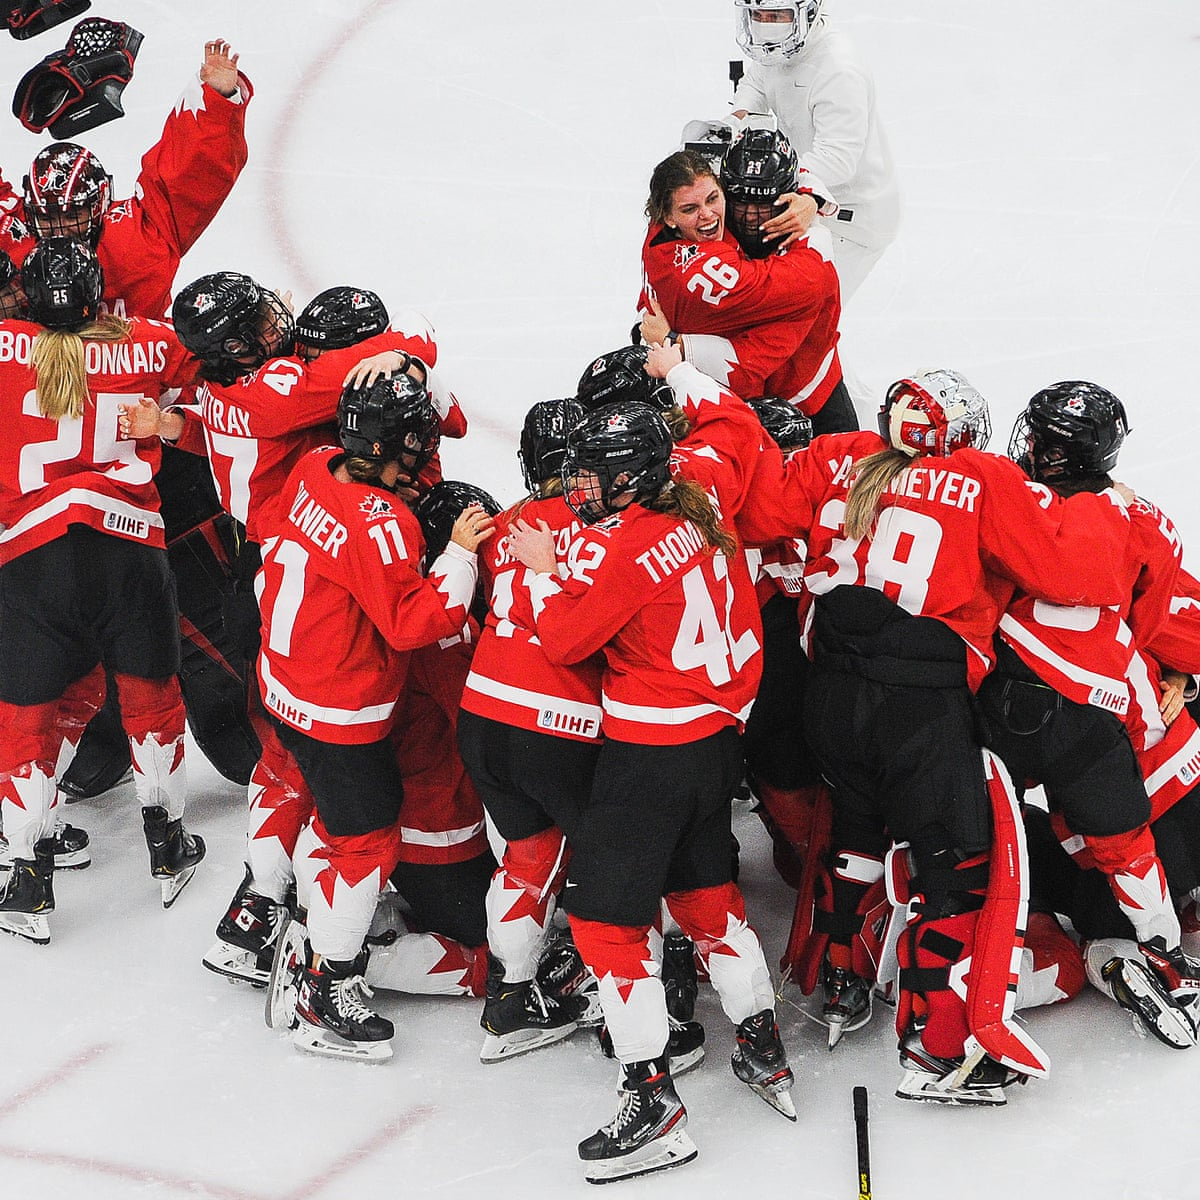 Canada upset USA in OT thriller to become women's ice hockey world  champions | Ice hockey | The Guardian